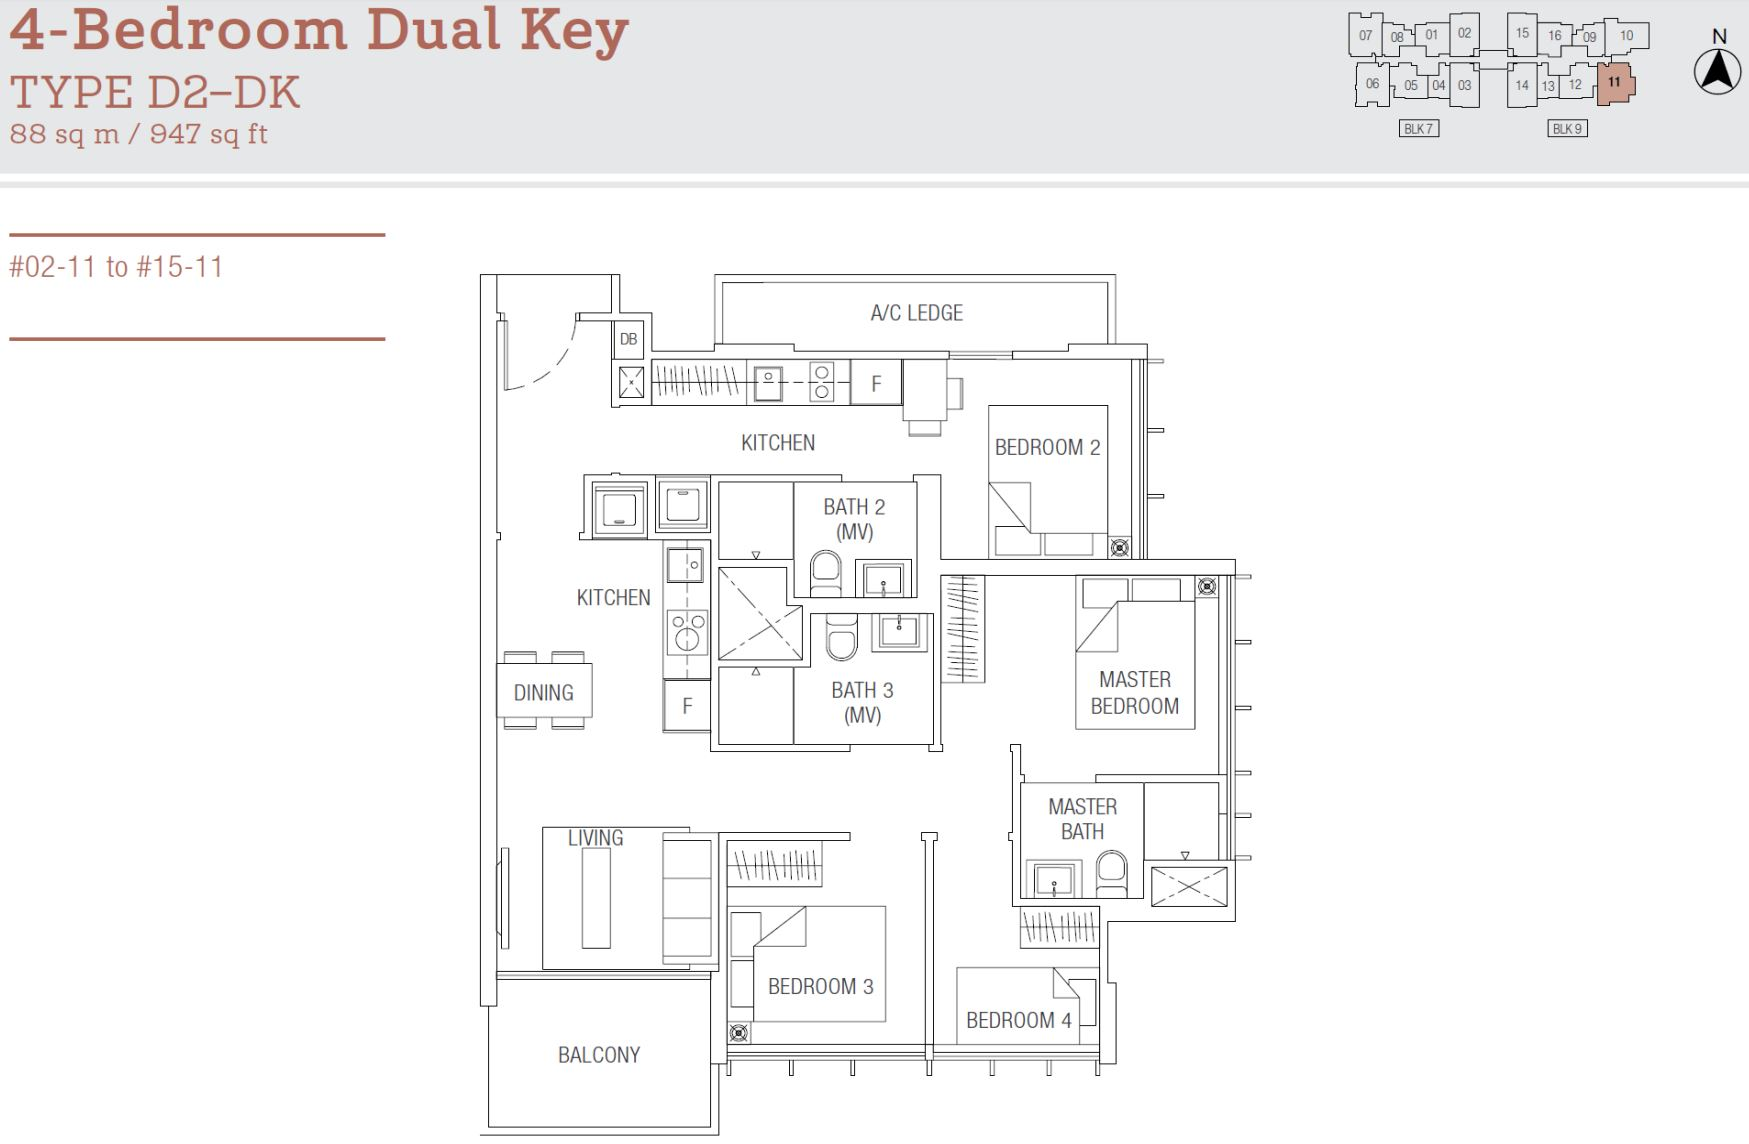 Tre Residences FloorPlan - 4 Bedroom Dual Key Type D2-DK